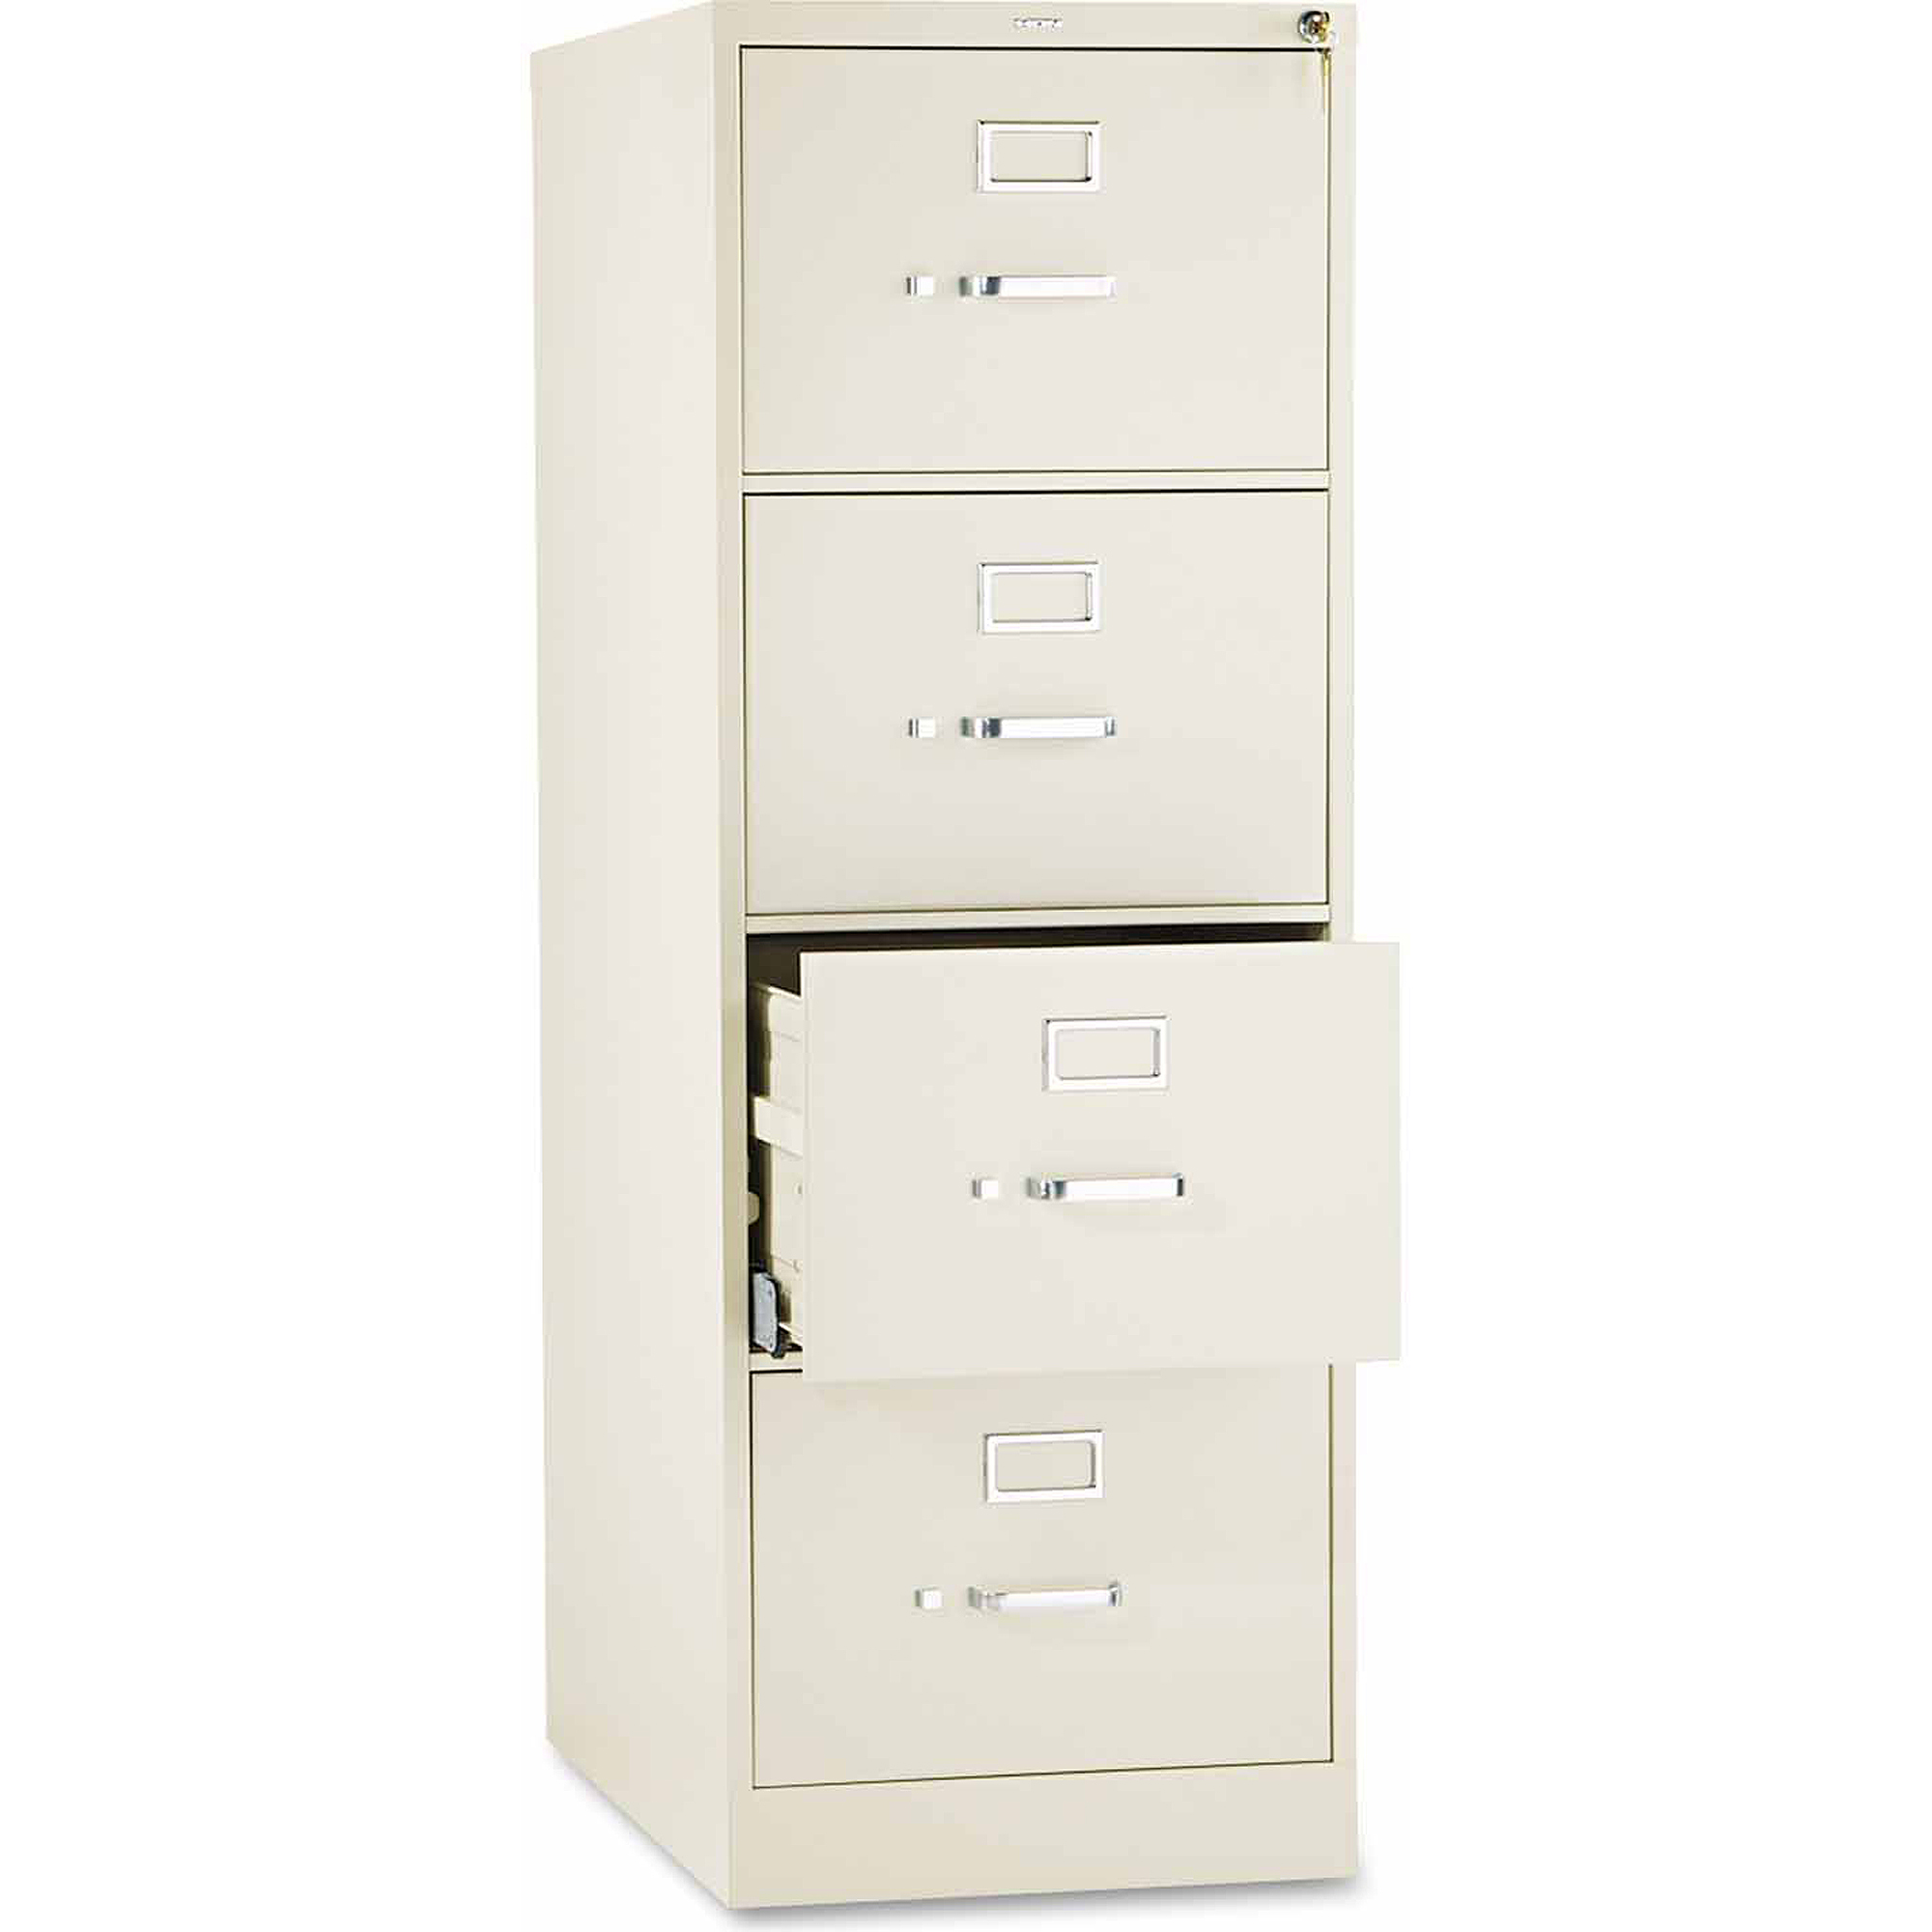 Hon 510 Series 4-Drawer Full-Suspension File, Legal